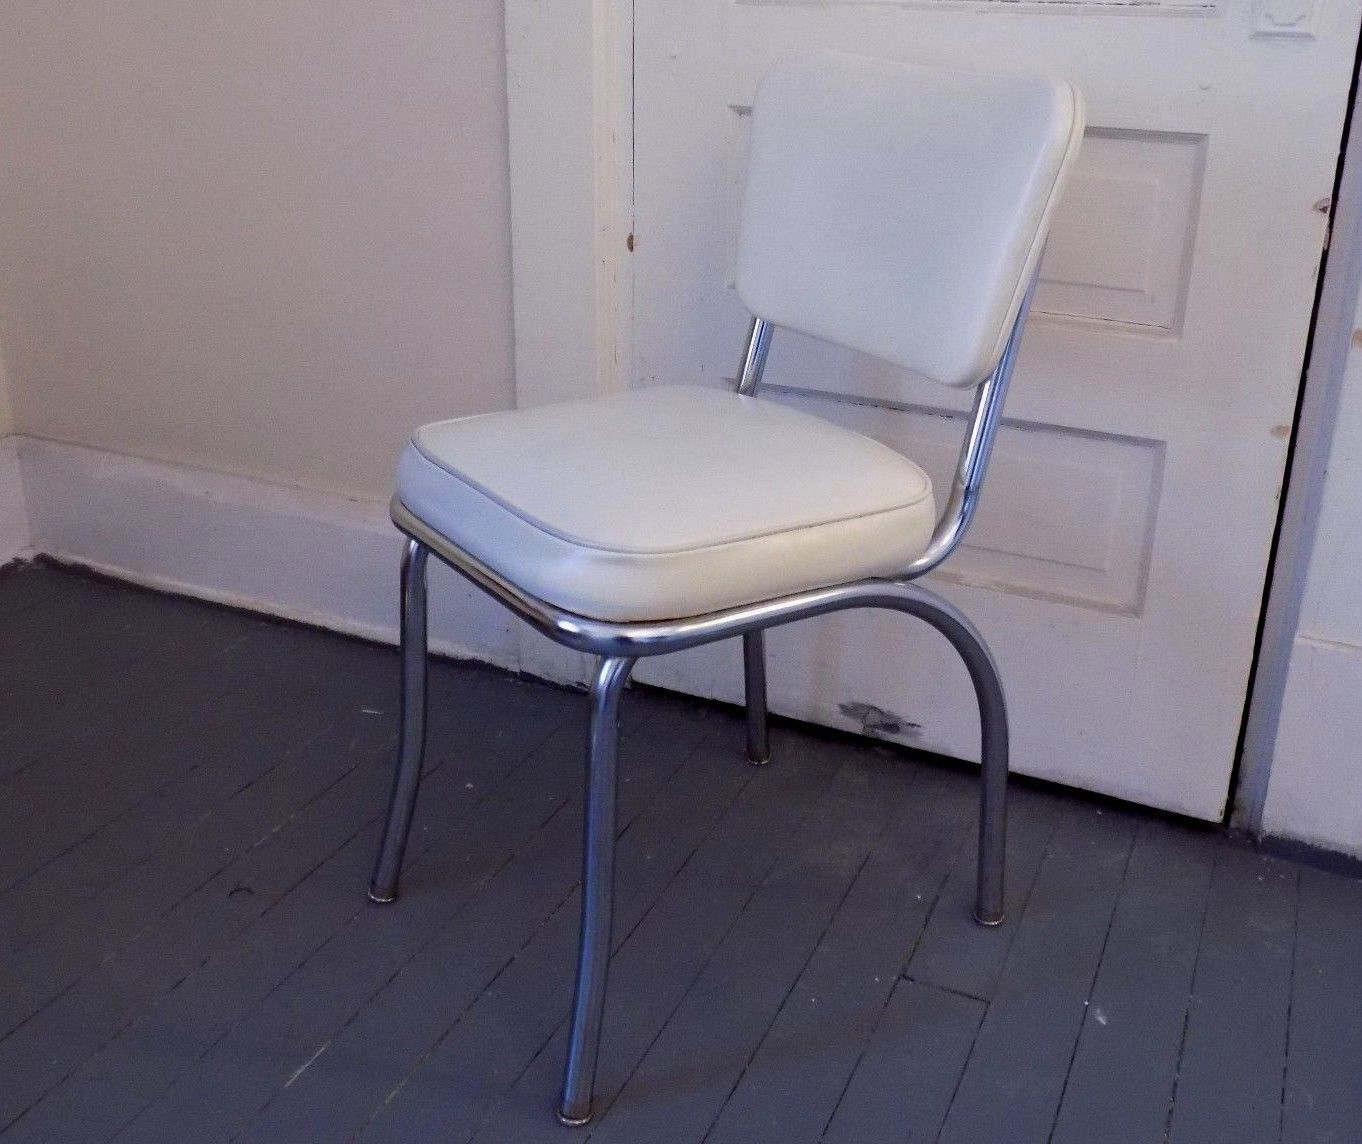 Kitchen Desk Chair Emperor Gaming Richardson Seating Retro 1950s Style Chrome Side